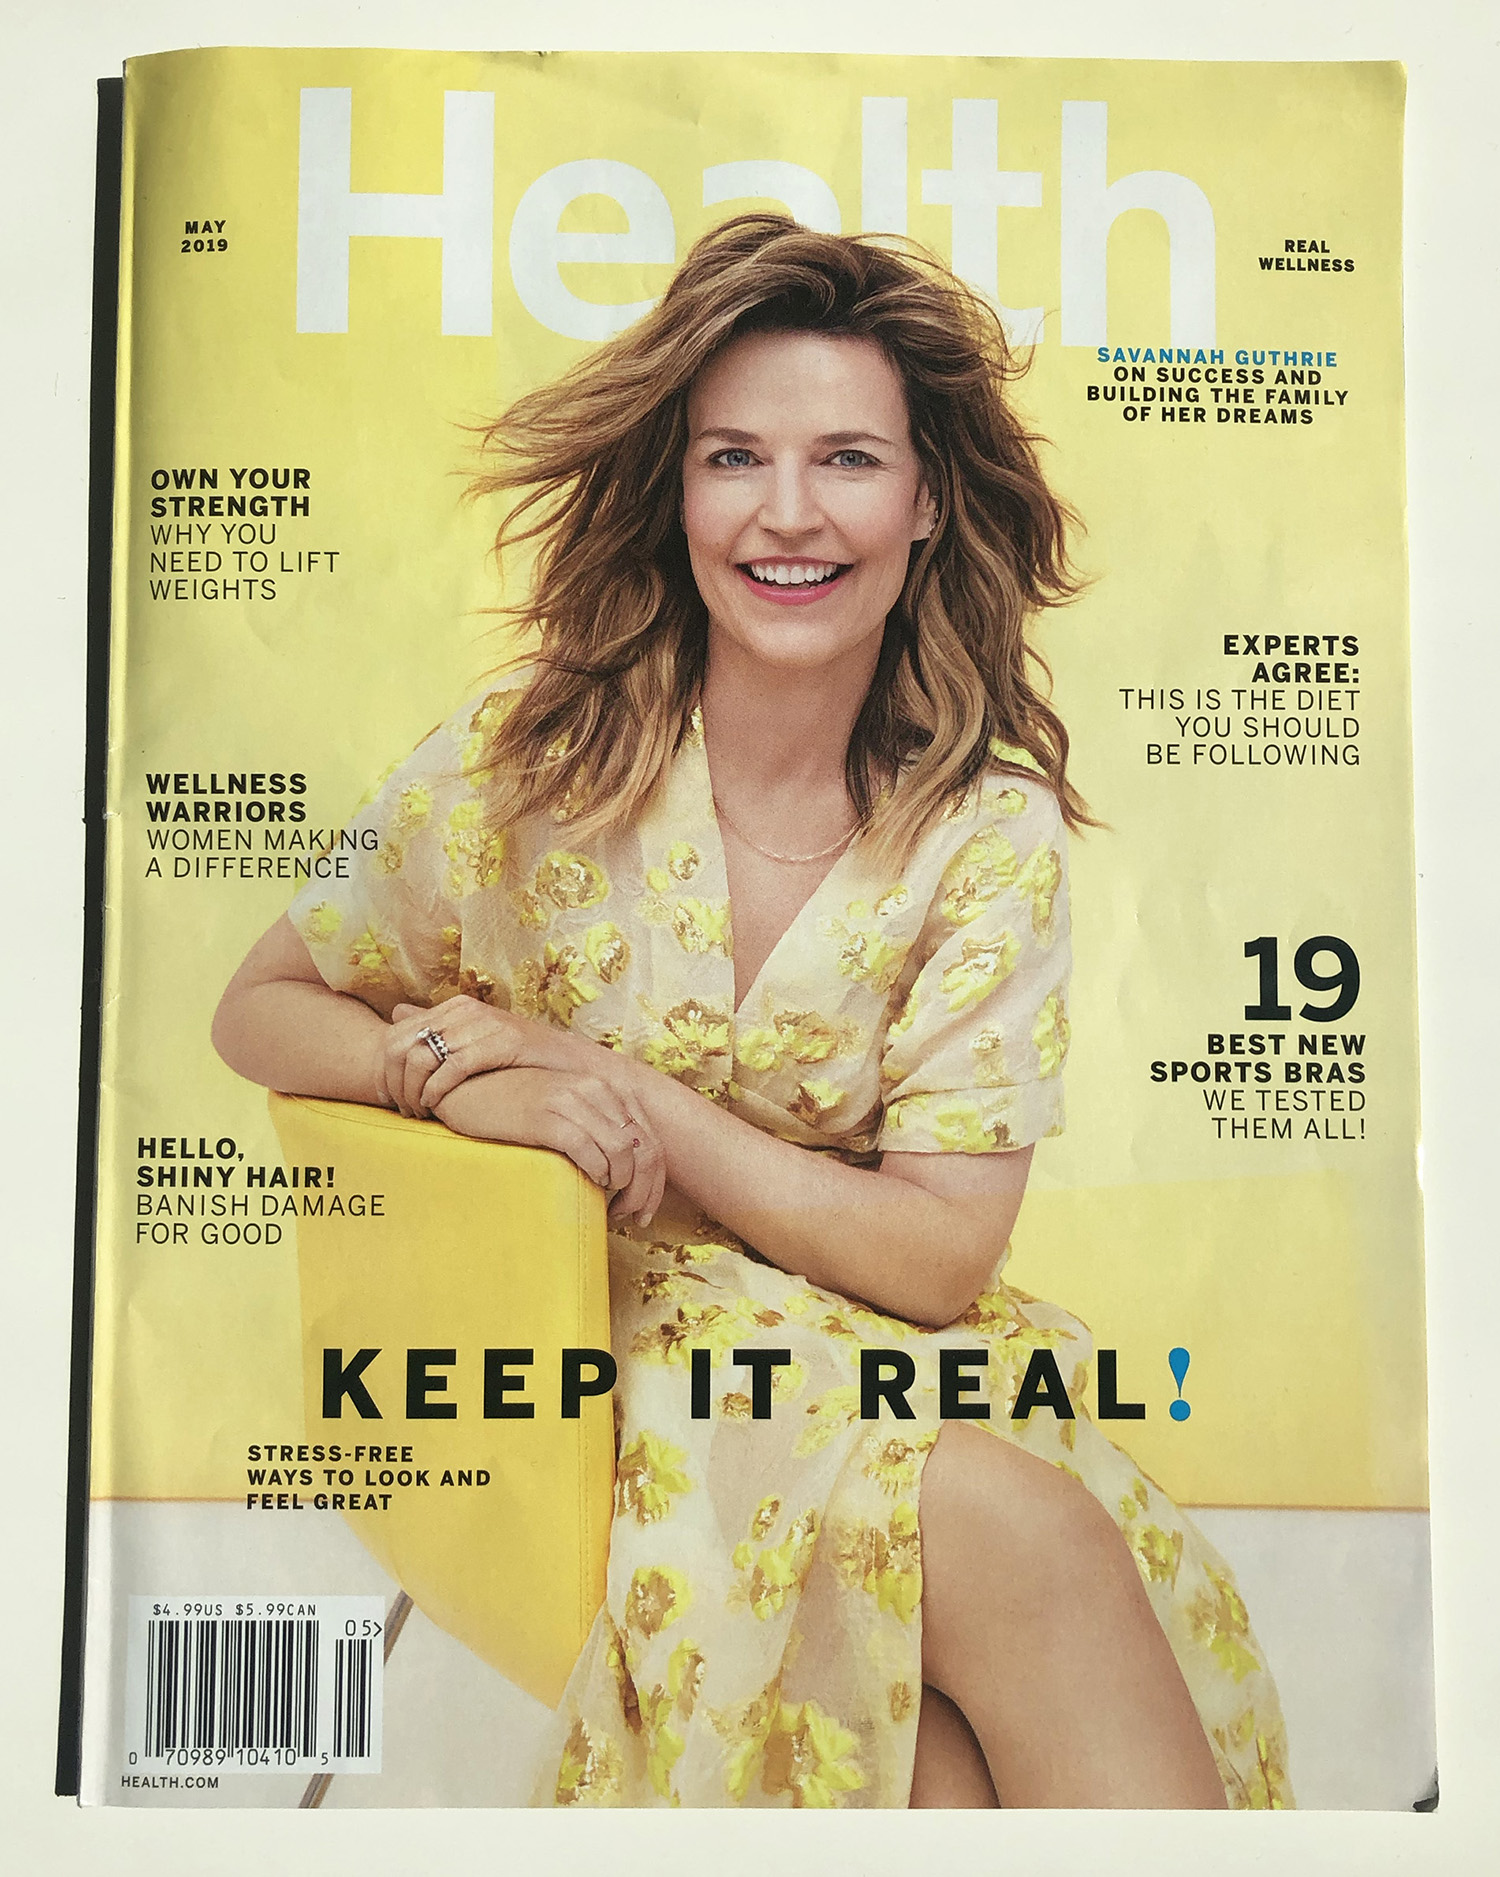 Vira Sun Featured in Health Magazine; May 2019 Issue